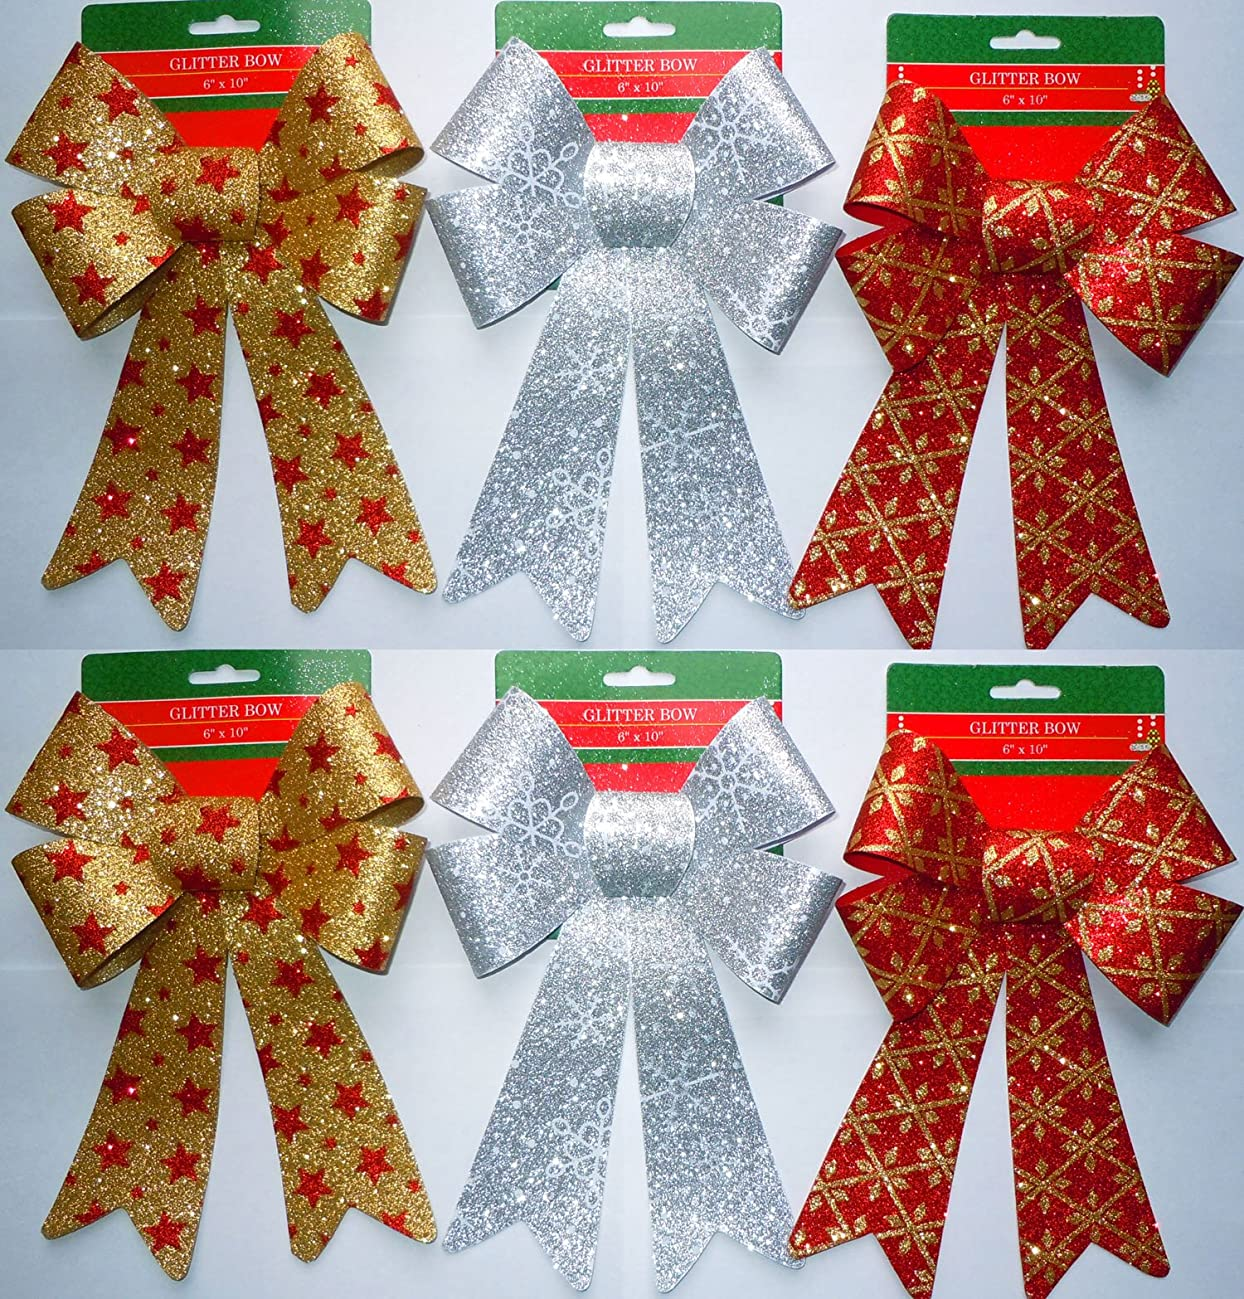 Glitter Christmas Bows 6x10 Inches - 6 Large Bows with 3 Different Styles Included